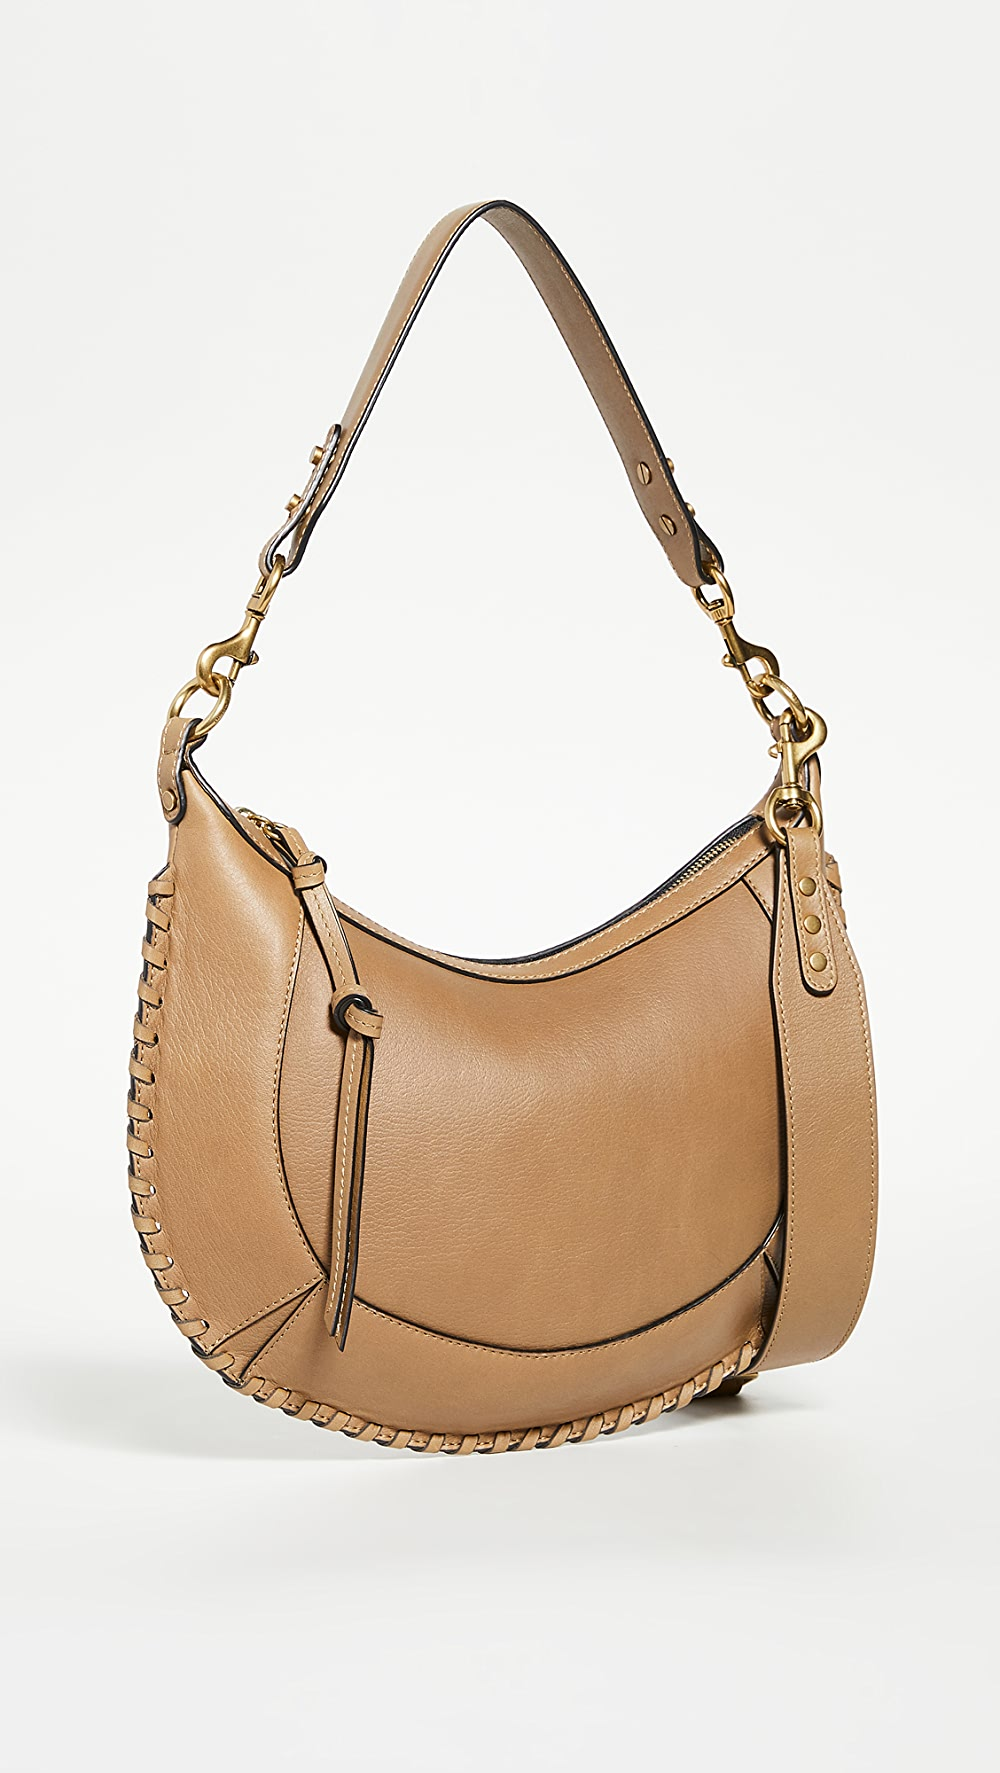 2019 New Style Isabel Marant - Naoko Bag Ideal Gift For All Occasions